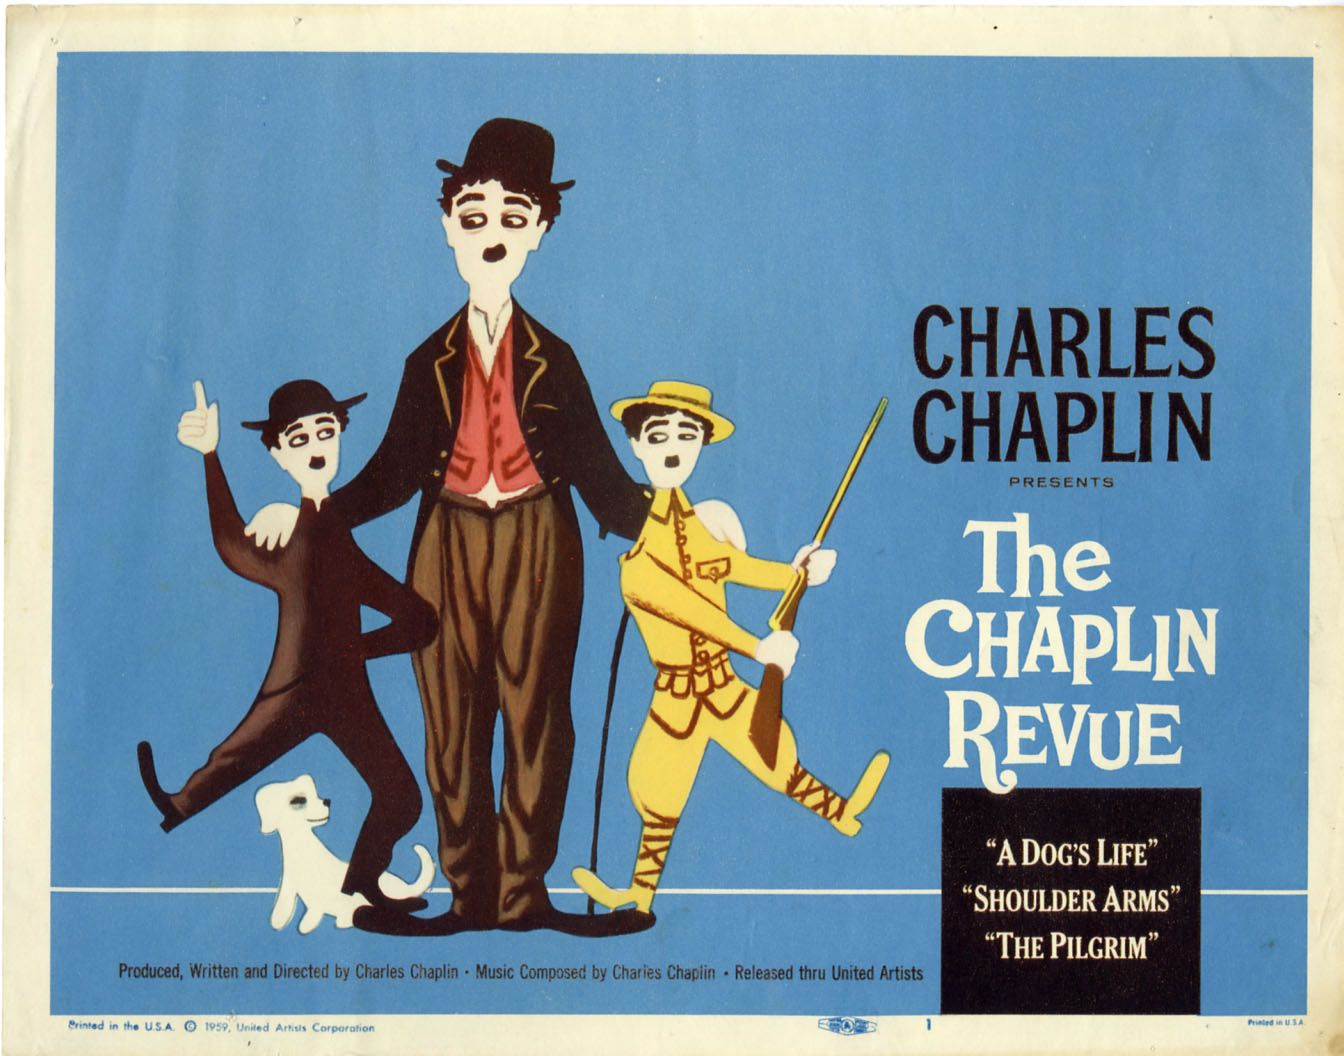 Lobby card for The Chaplin Revue! Watch A Dog's Life for free!